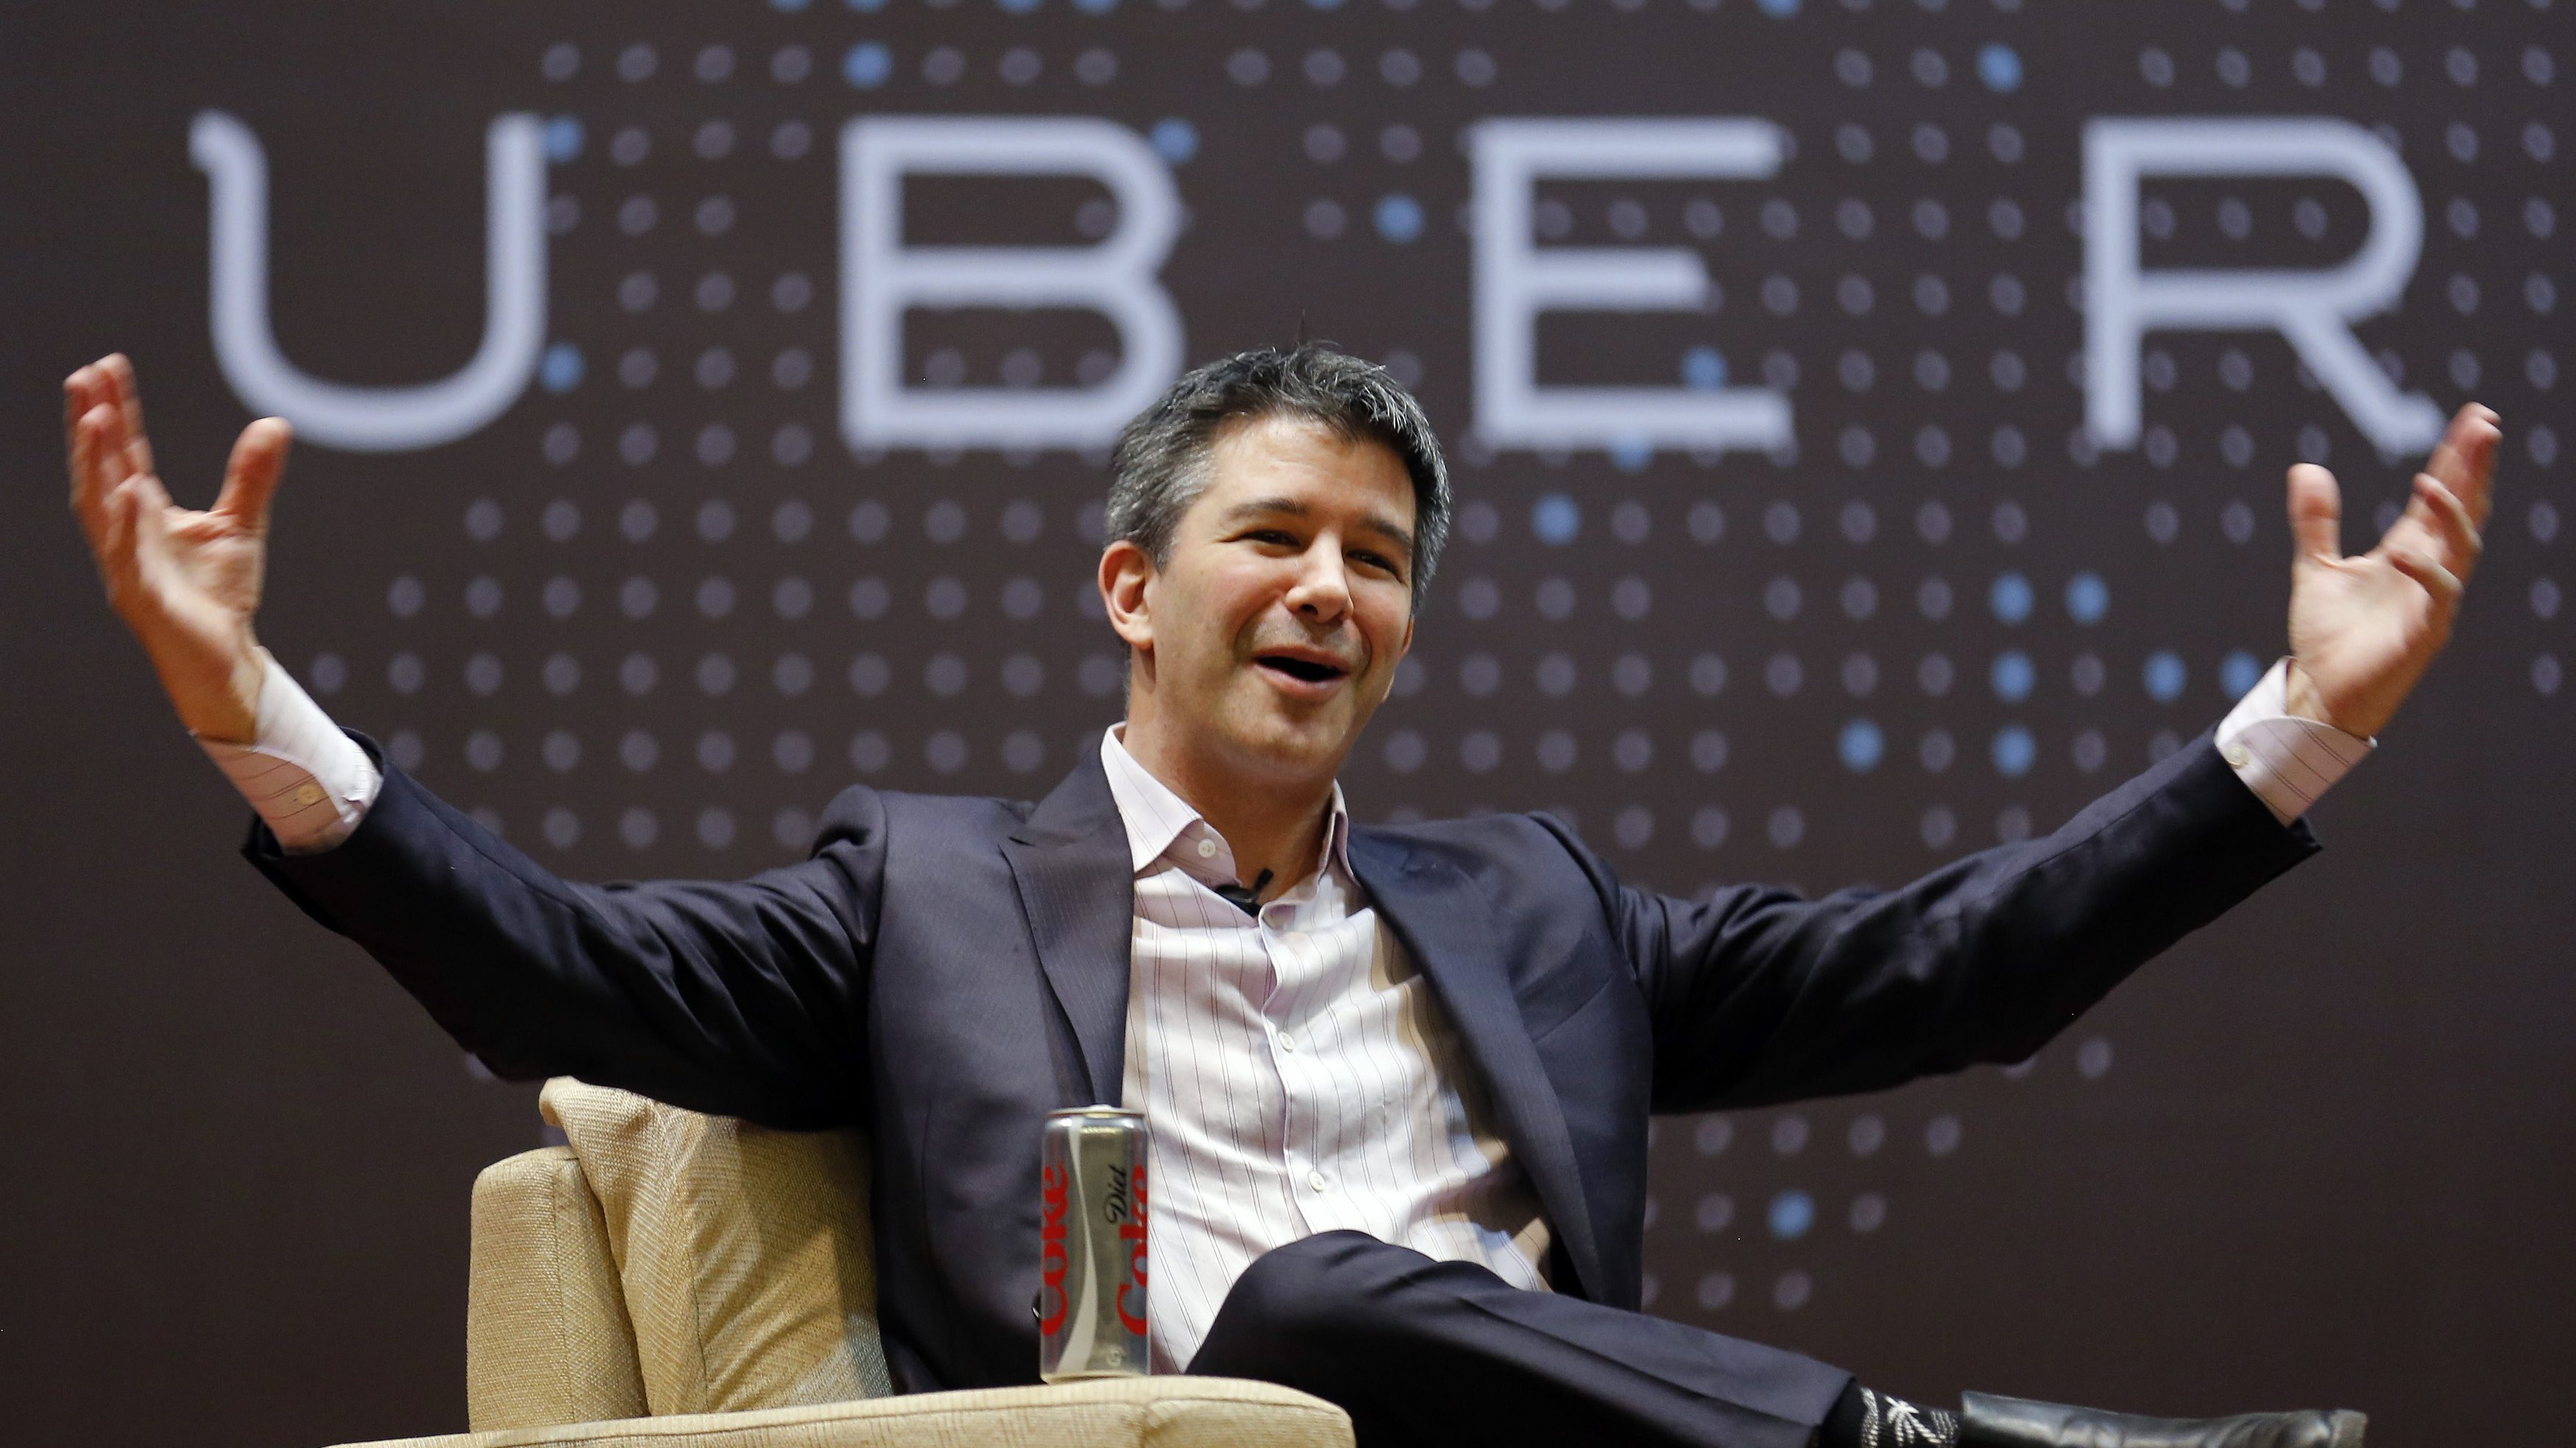 Uber CEO Travis Kalanick speaks to students during an interaction at the Indian Institute of Technology (IIT) campus in Mumbai, India, January 19, 2016. REUTERS/Danish Siddiqui - RTX231O6